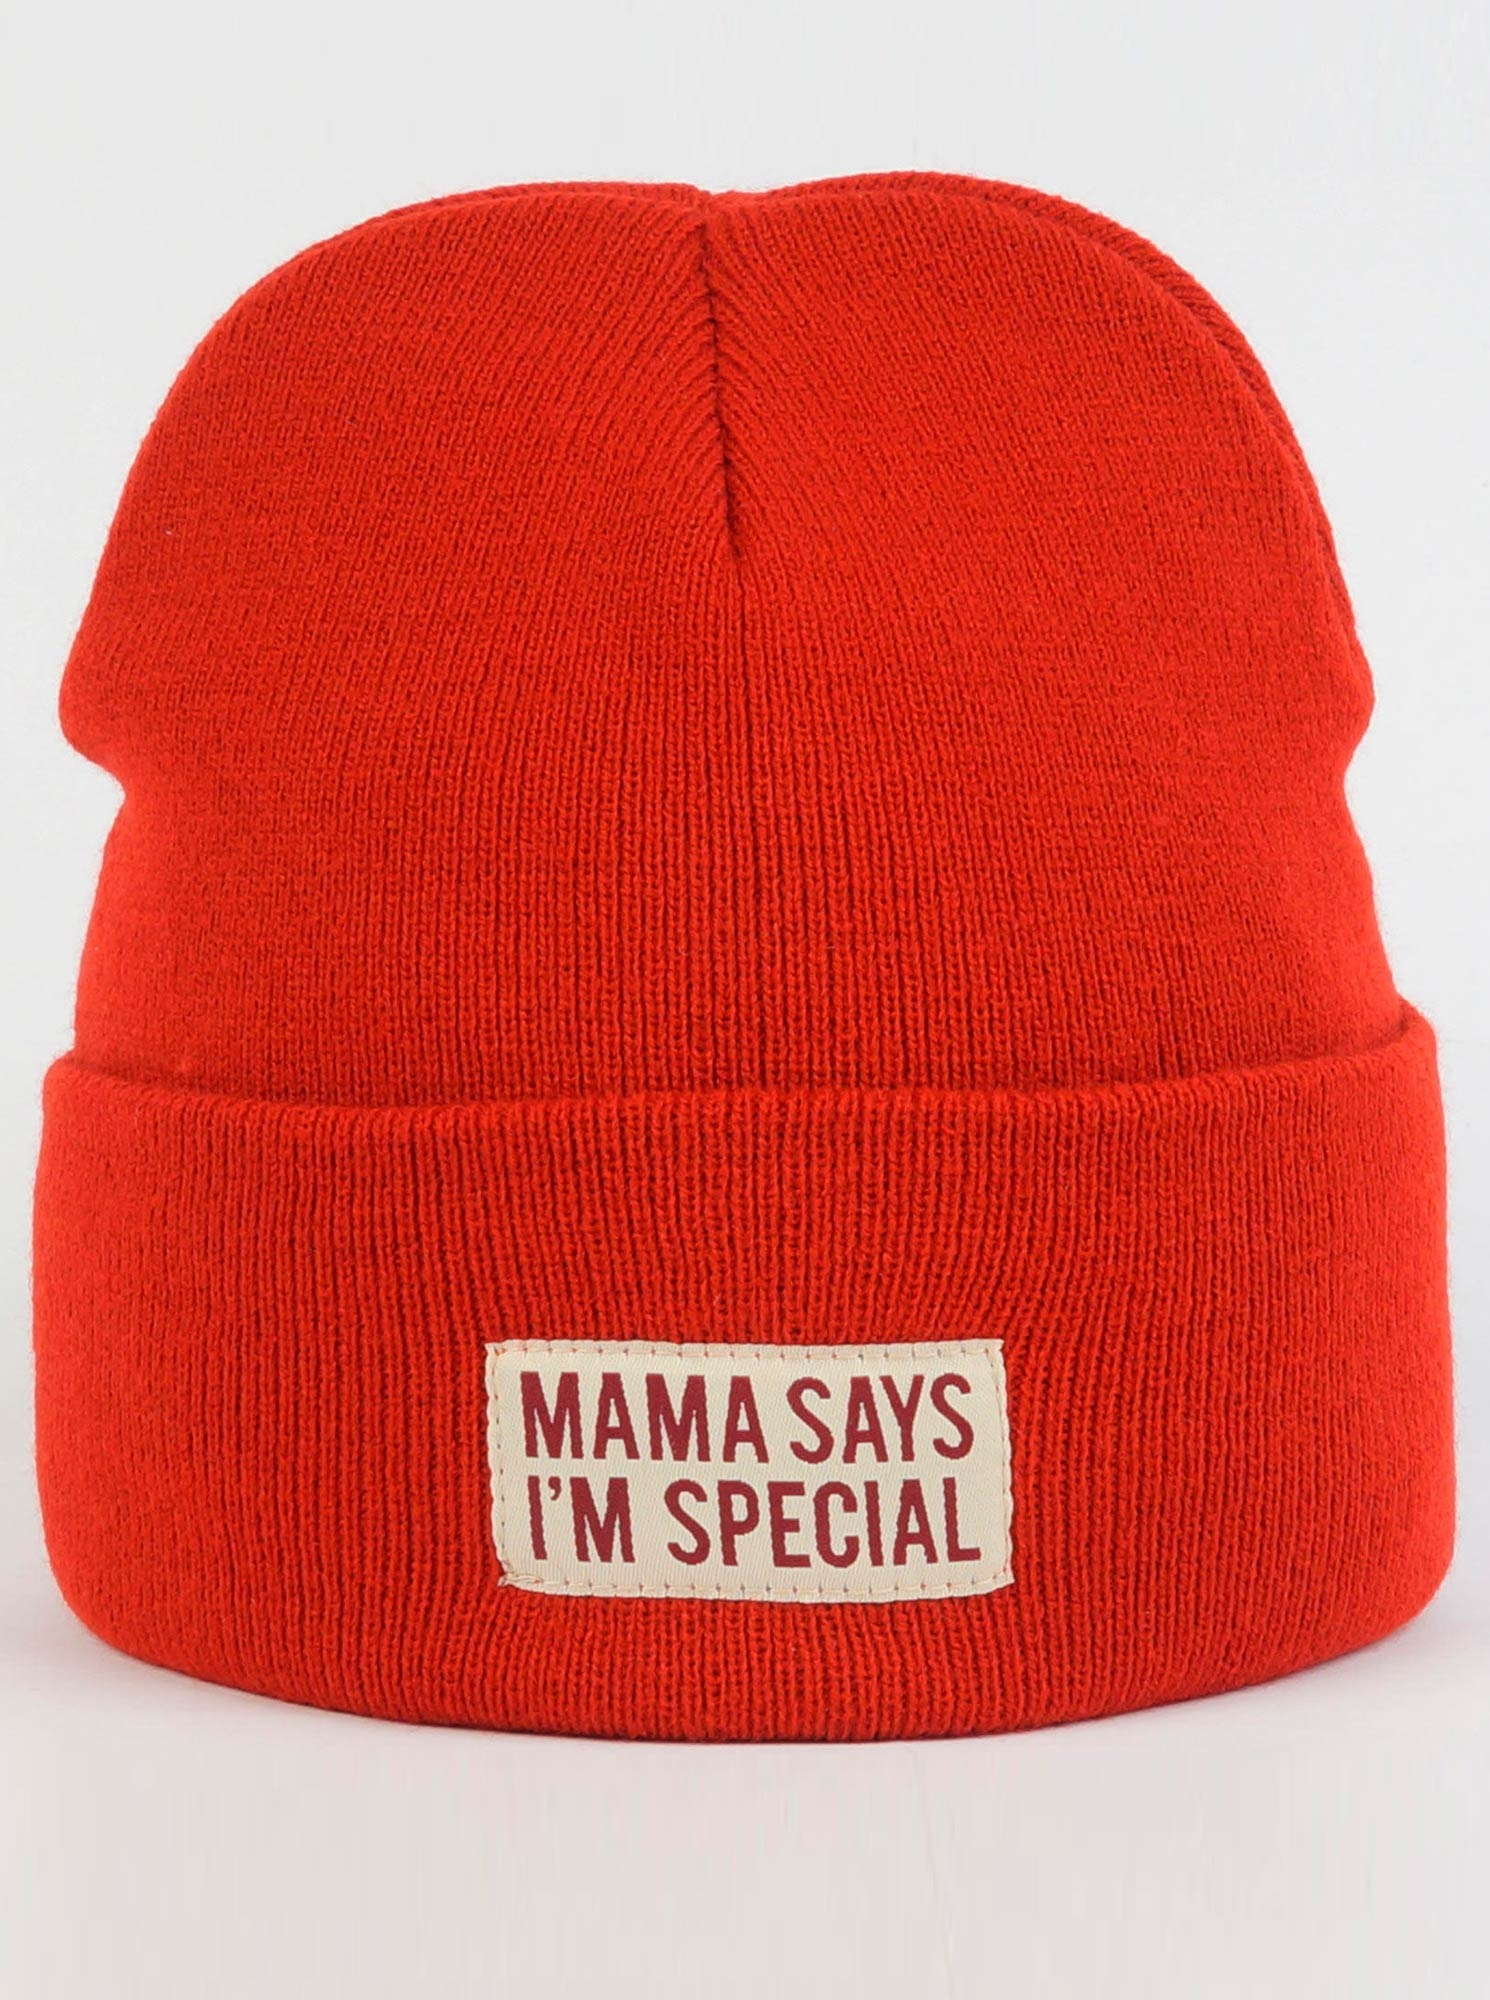 Шапка Trailhead Mama Says Im Special Красная, HAT18-LBL-SPECIAL_RD